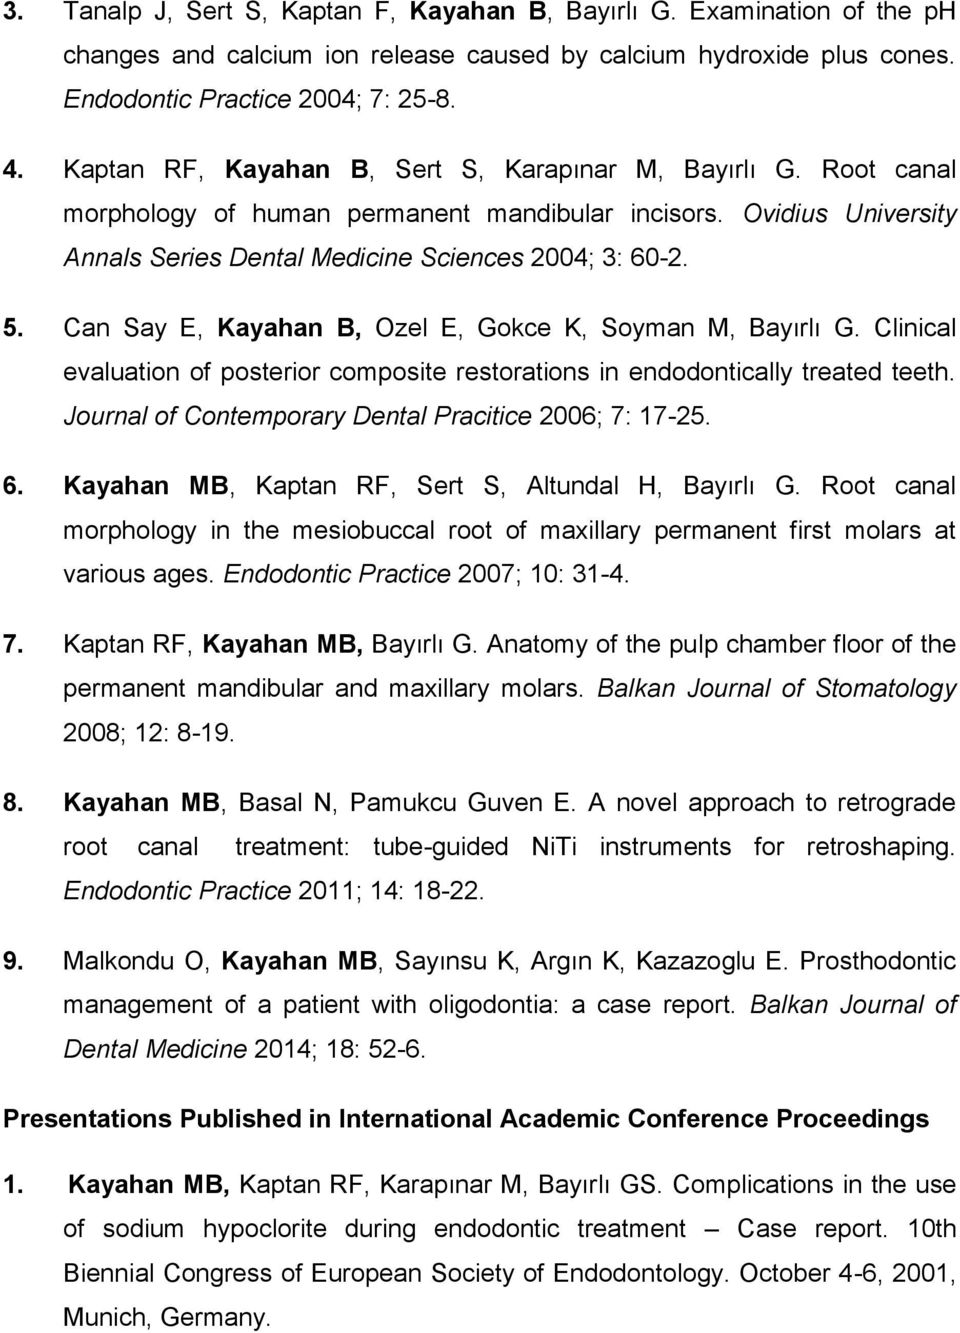 Can Say E, Kayahan B, Ozel E, Gokce K, Soyman M, Bayırlı G. Clinical evaluation of posterior composite restorations in endodontically treated teeth.